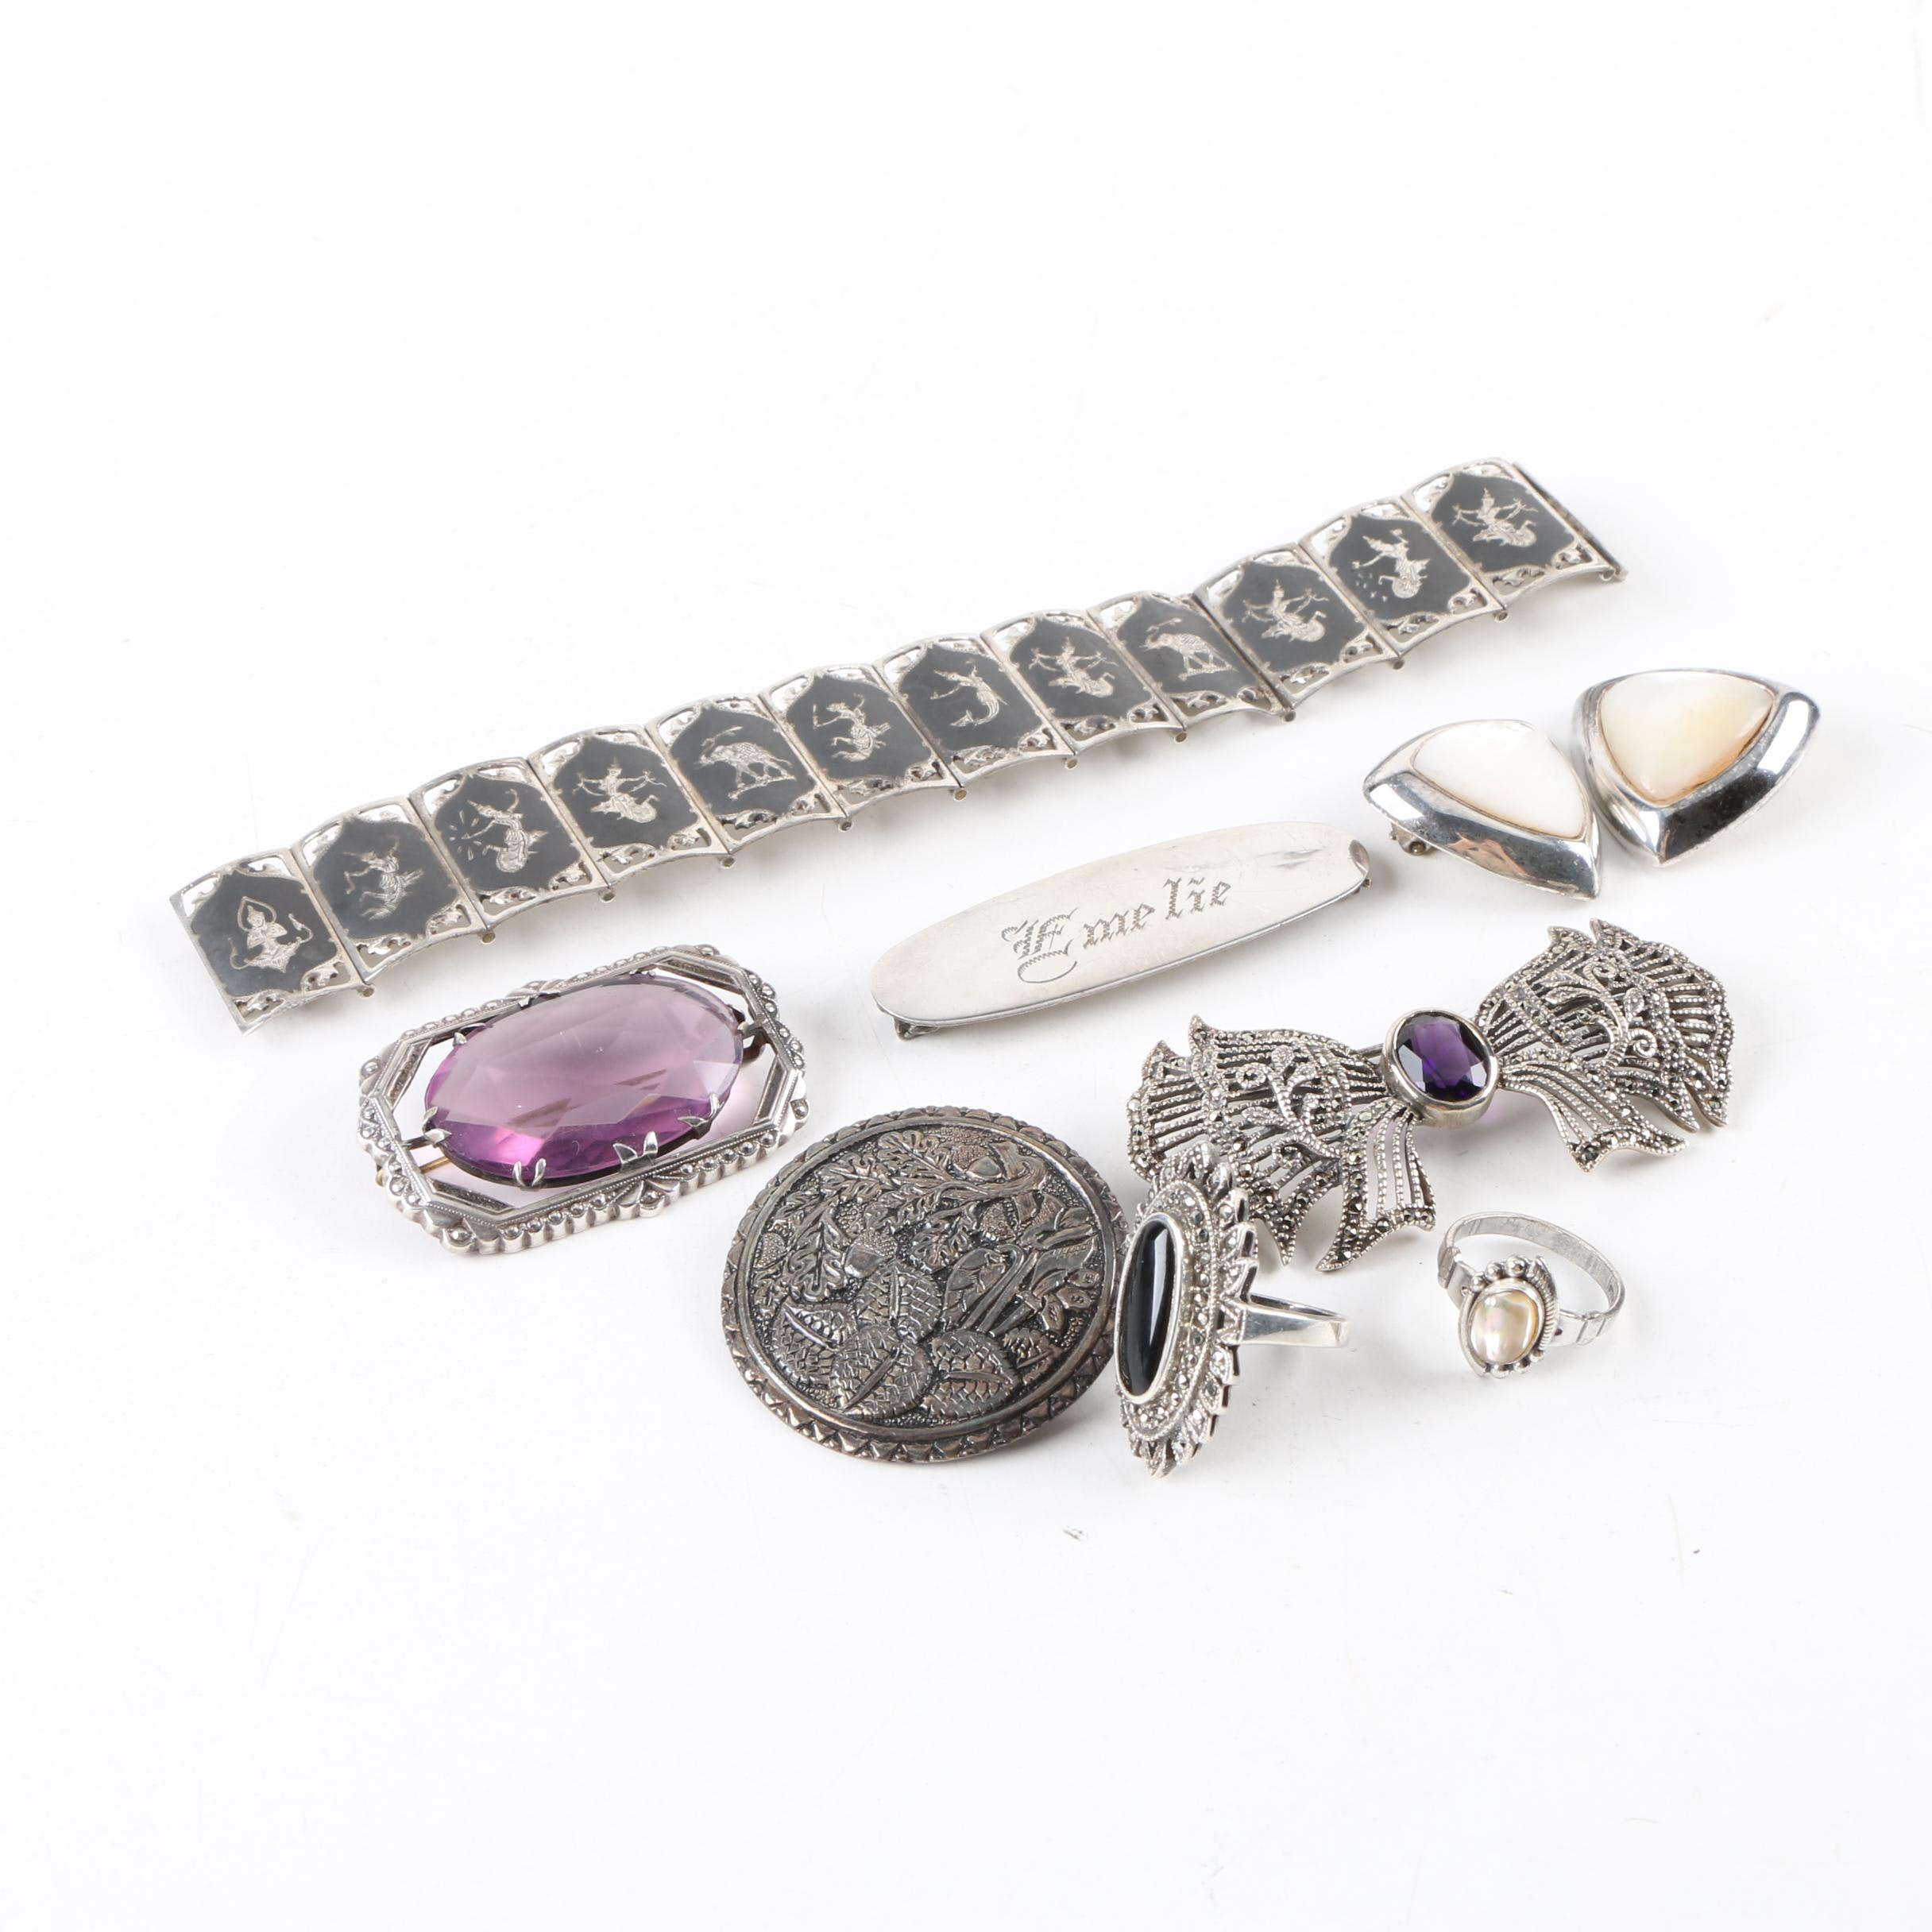 Sterling and 800 Silver Jewelry Including Mother of Pearl, Onyx, and Marcasite